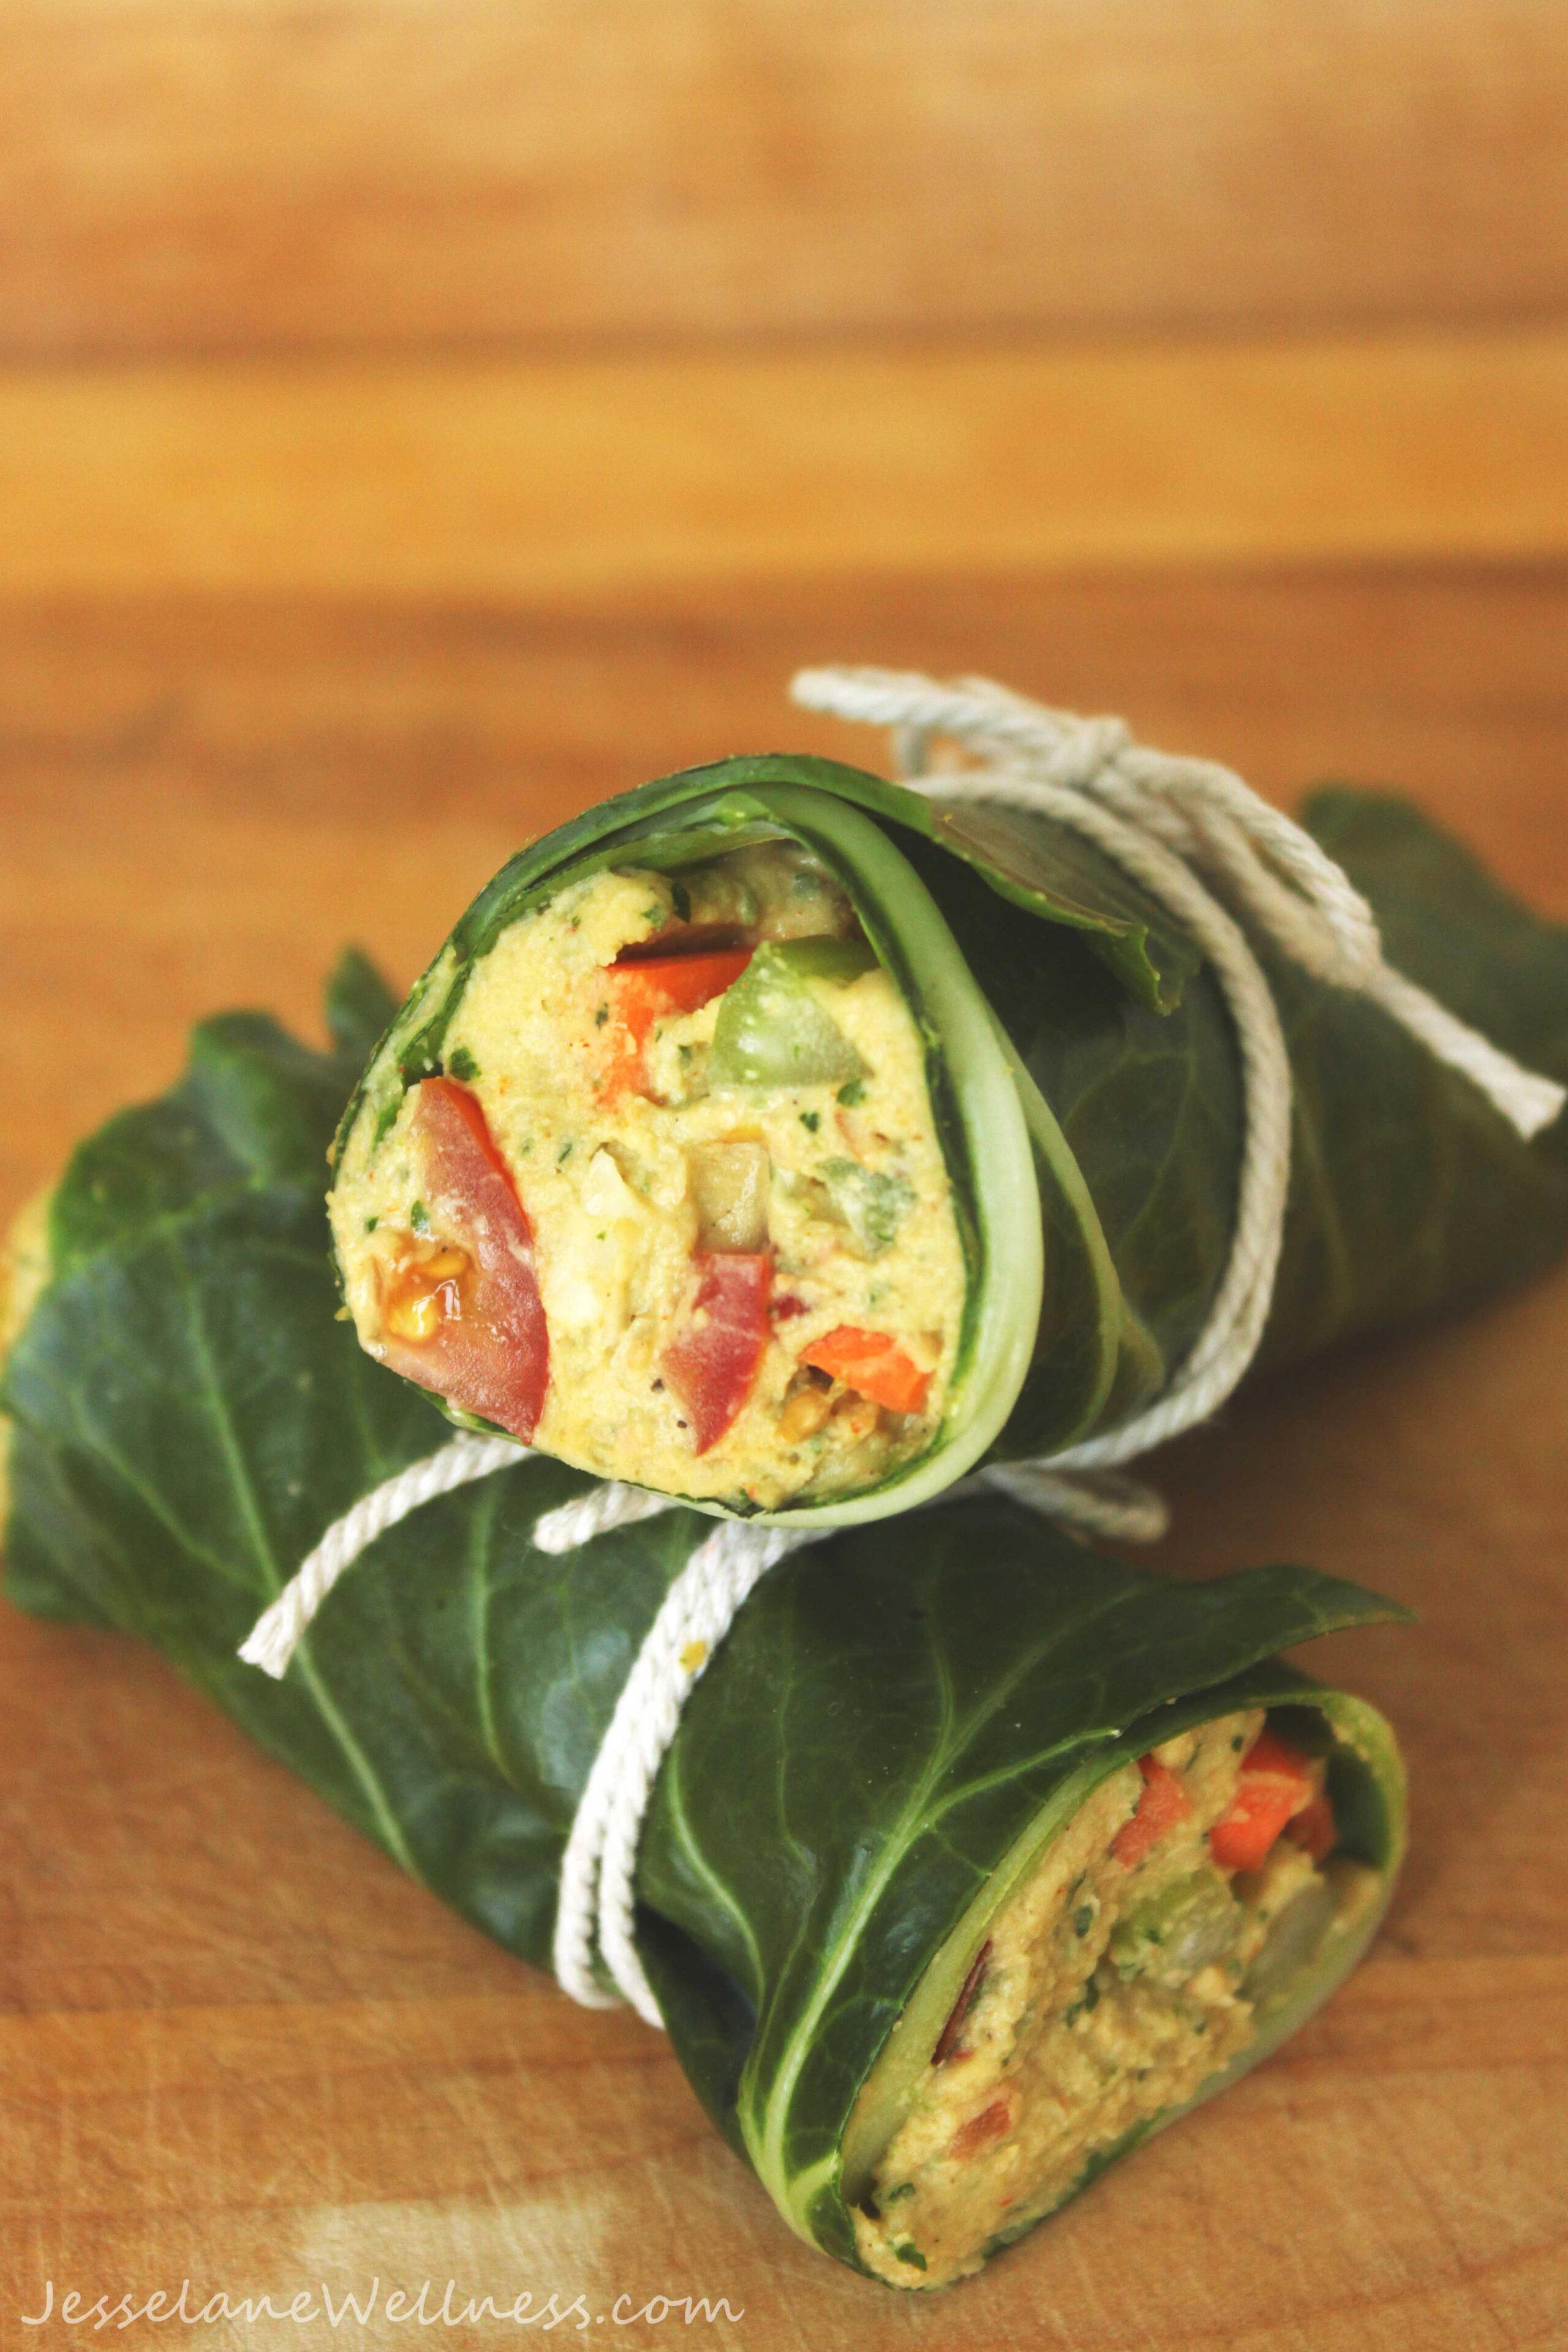 Falafel Hummus Collard Wraps by @jesselwellness #vegan